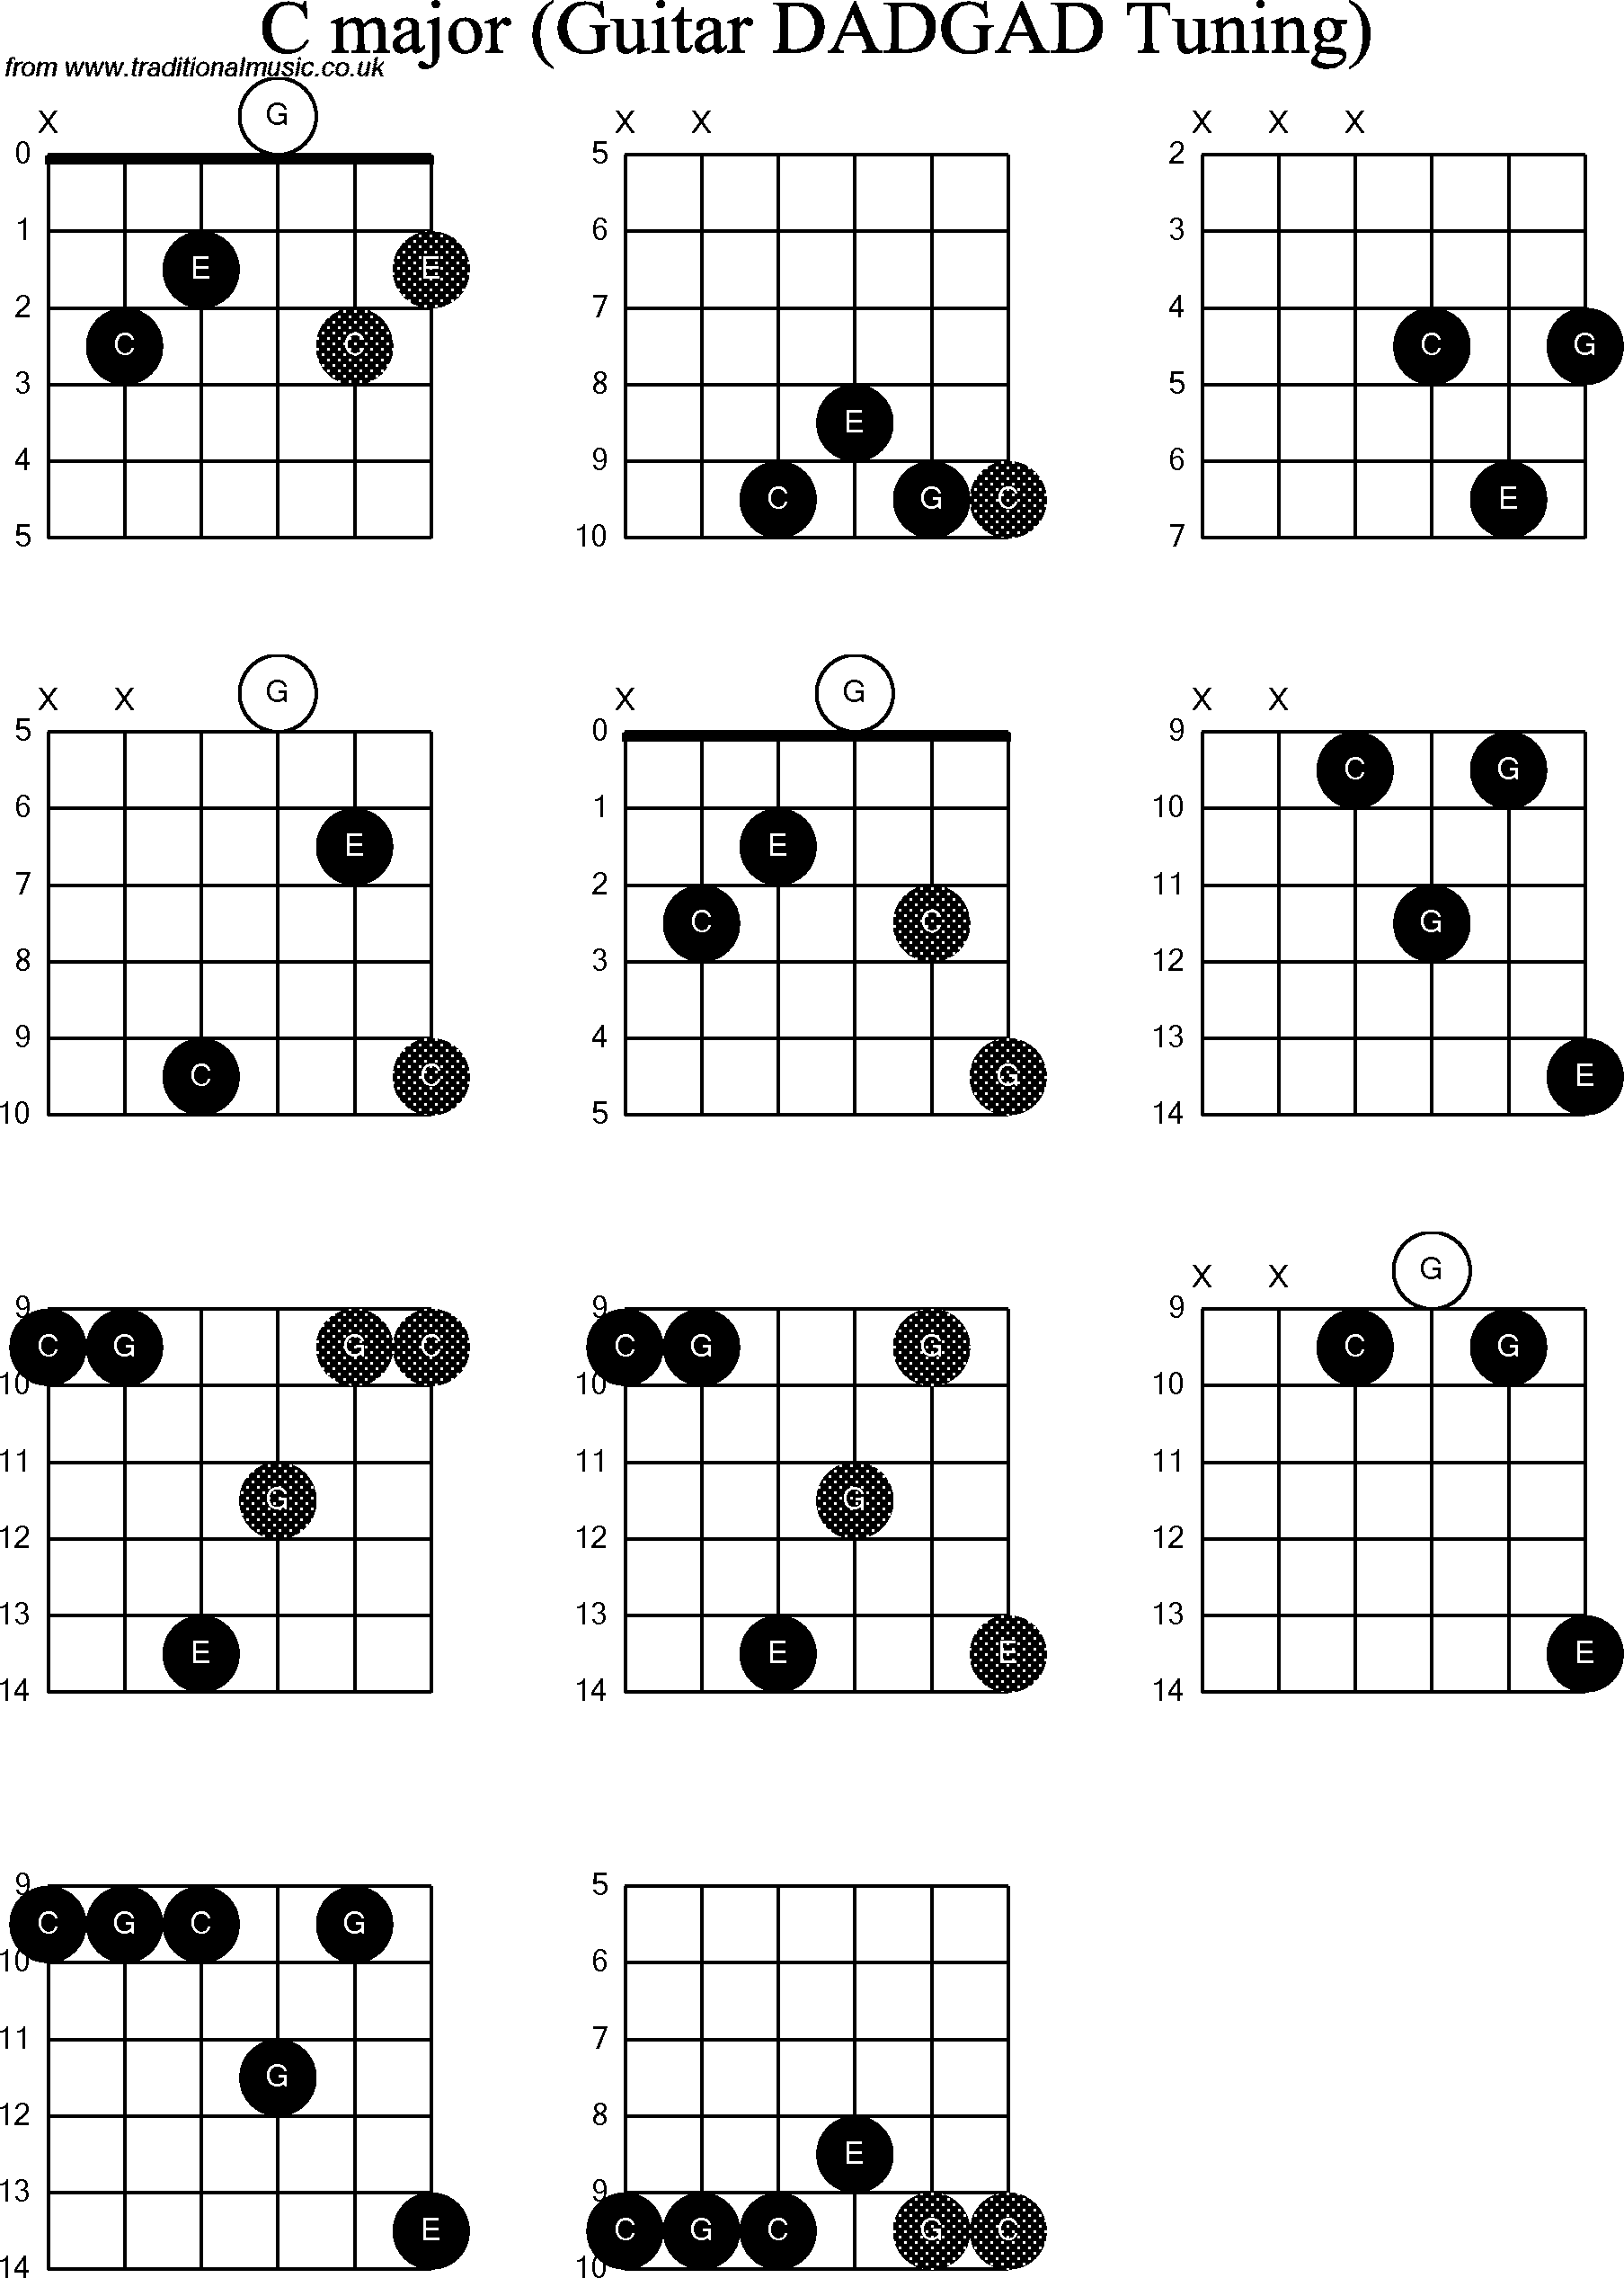 Chord diagrams d modal guitar dadgad c chord diagrams for d modal guitardadgad c hexwebz Choice Image